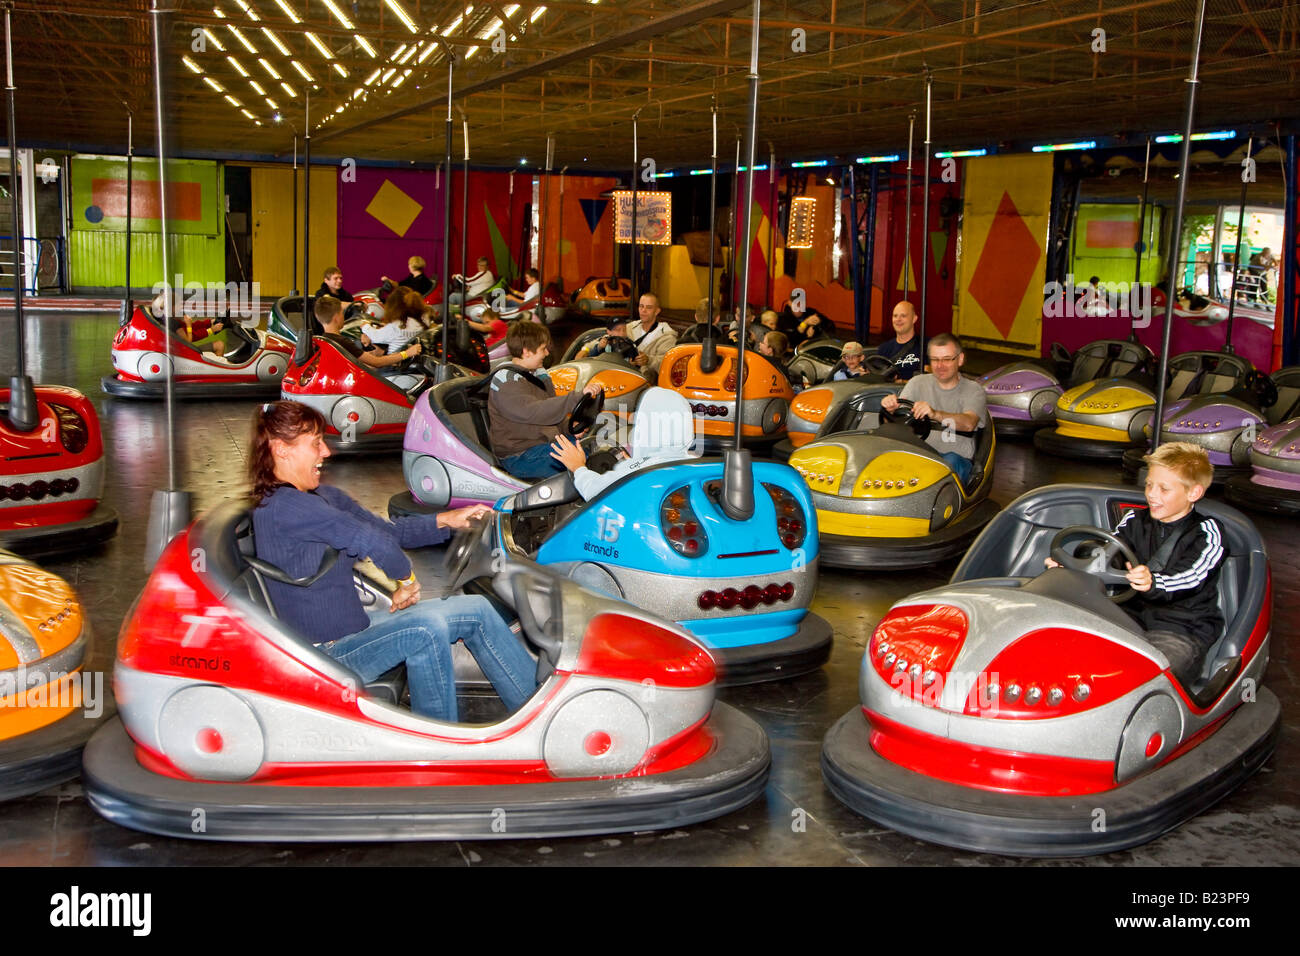 driving bumper cars in bakken amusement park stock photo